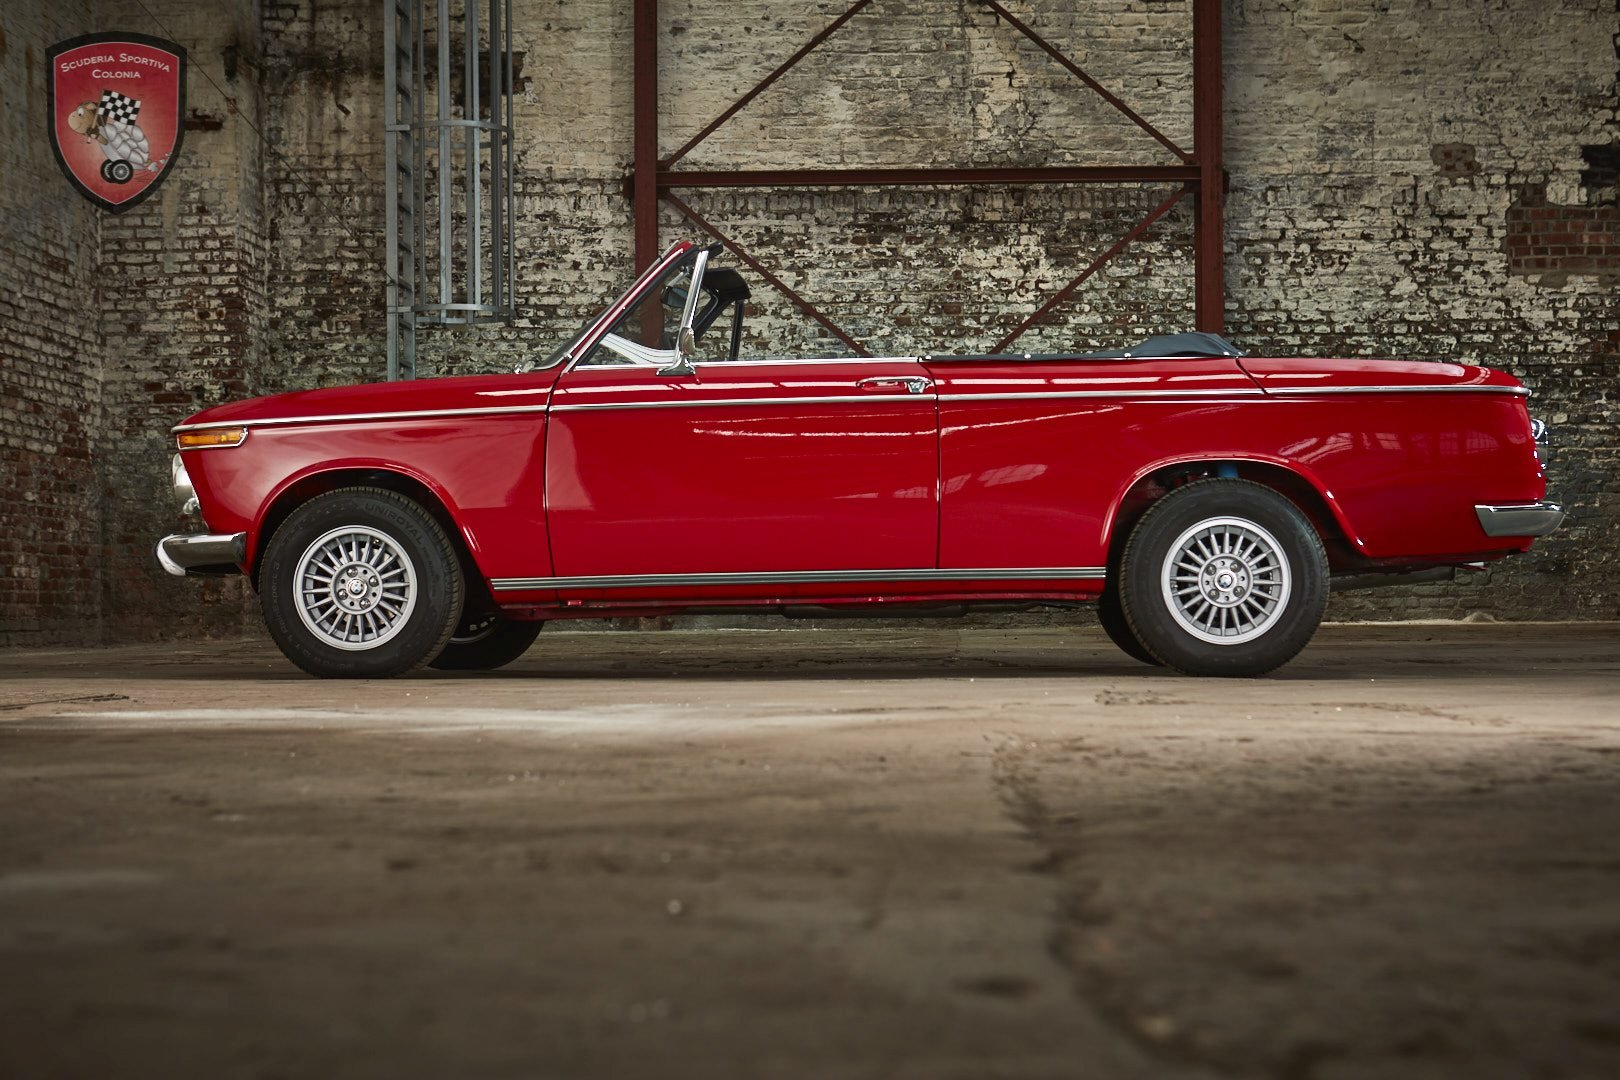 1970 Nice BMW 1600 cabriolet  For Sale (picture 2 of 6)